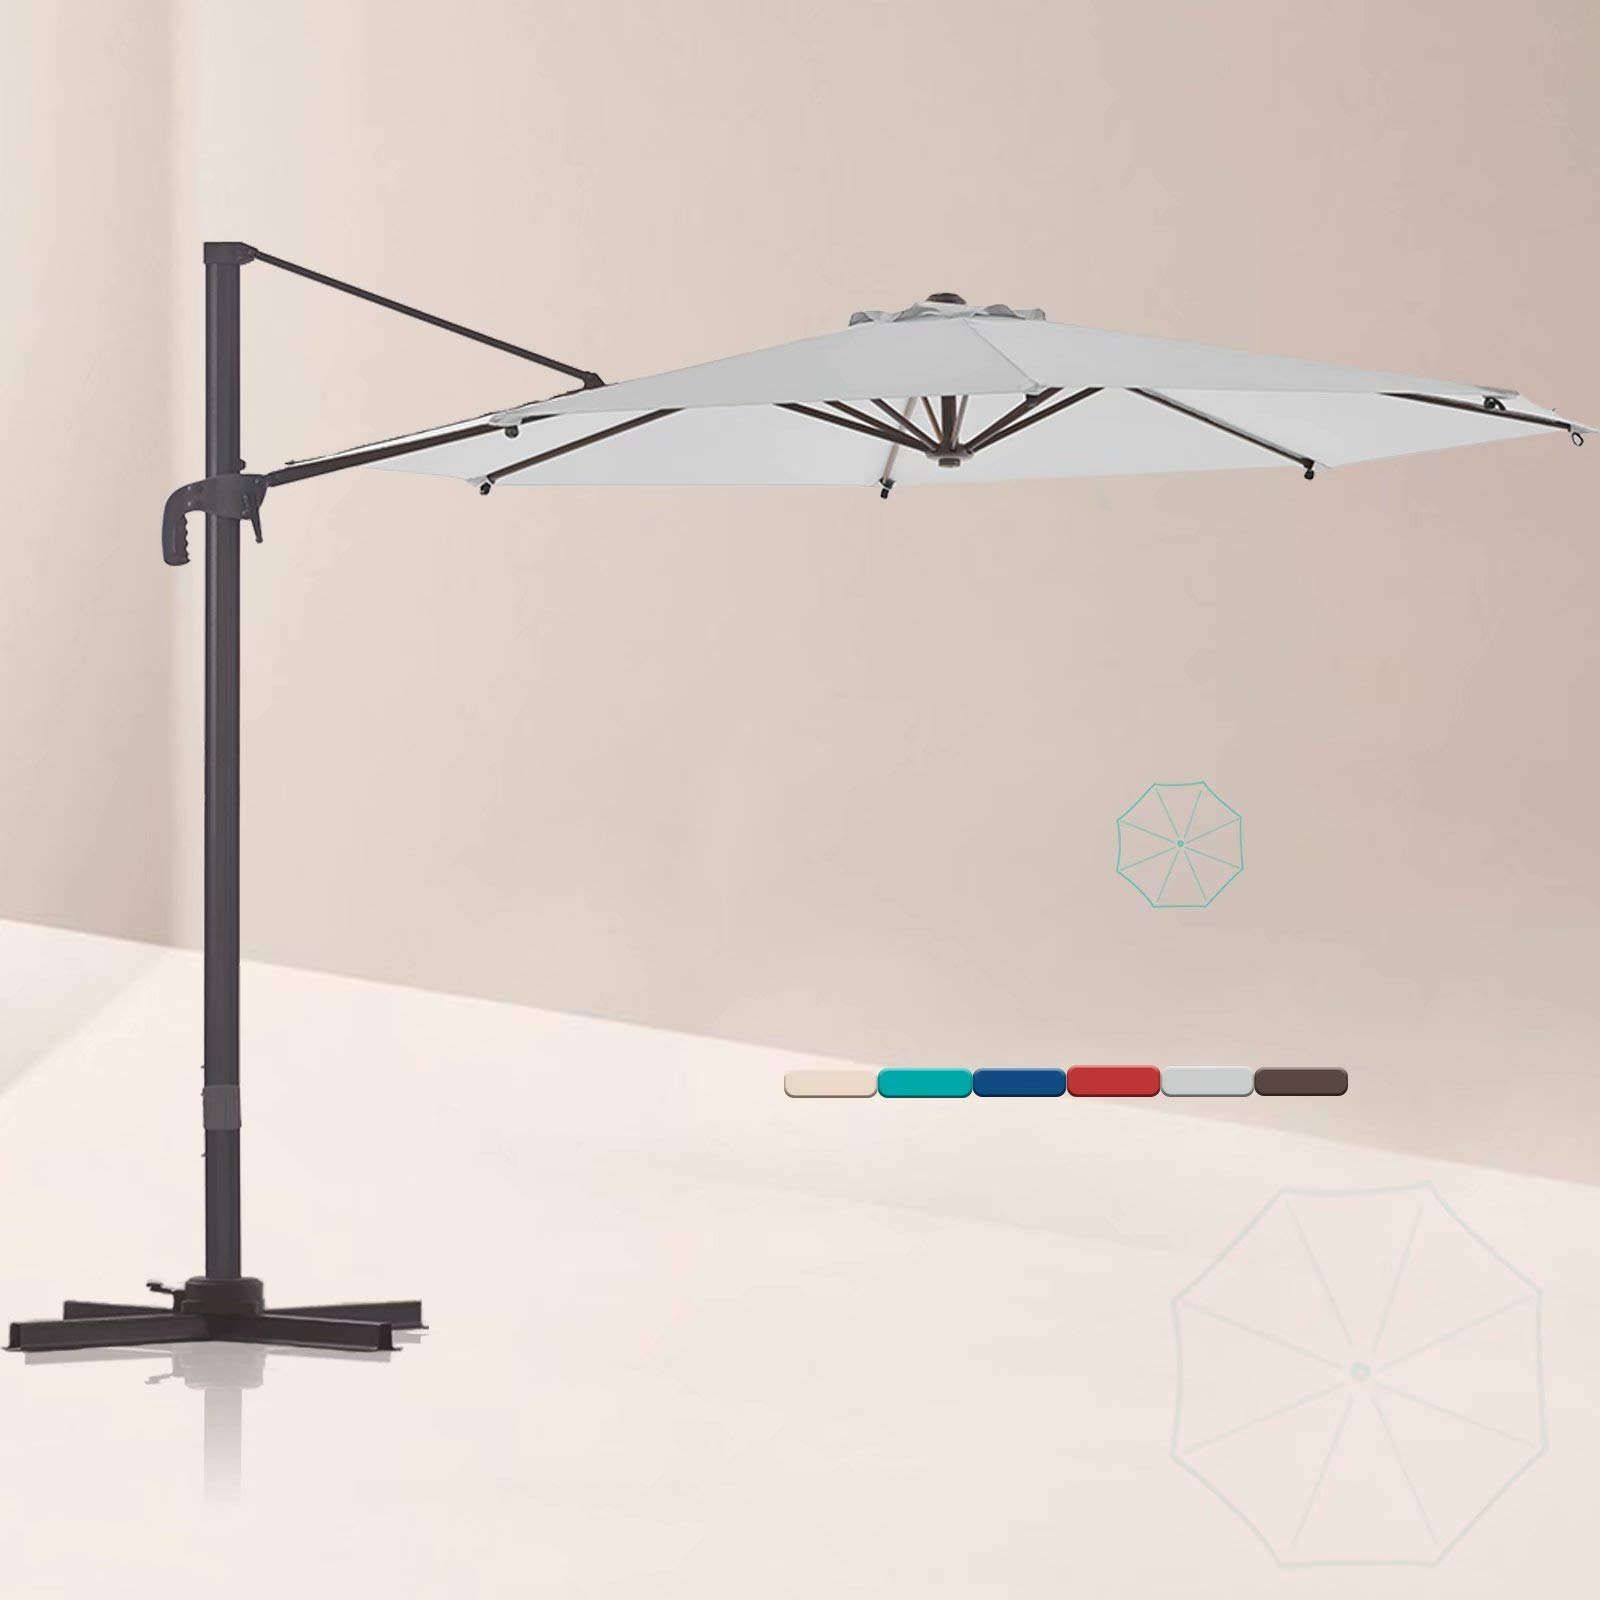 LE CONTE 10 ft. Cantilever Umbrella with 360 Degree Rotation | Outdoor Aluminum Offset Patio Umbrella Market Hanging Umbrellas | Solution Dyed Fabric, Integrated Tilting and Cross Base (Light Grey)